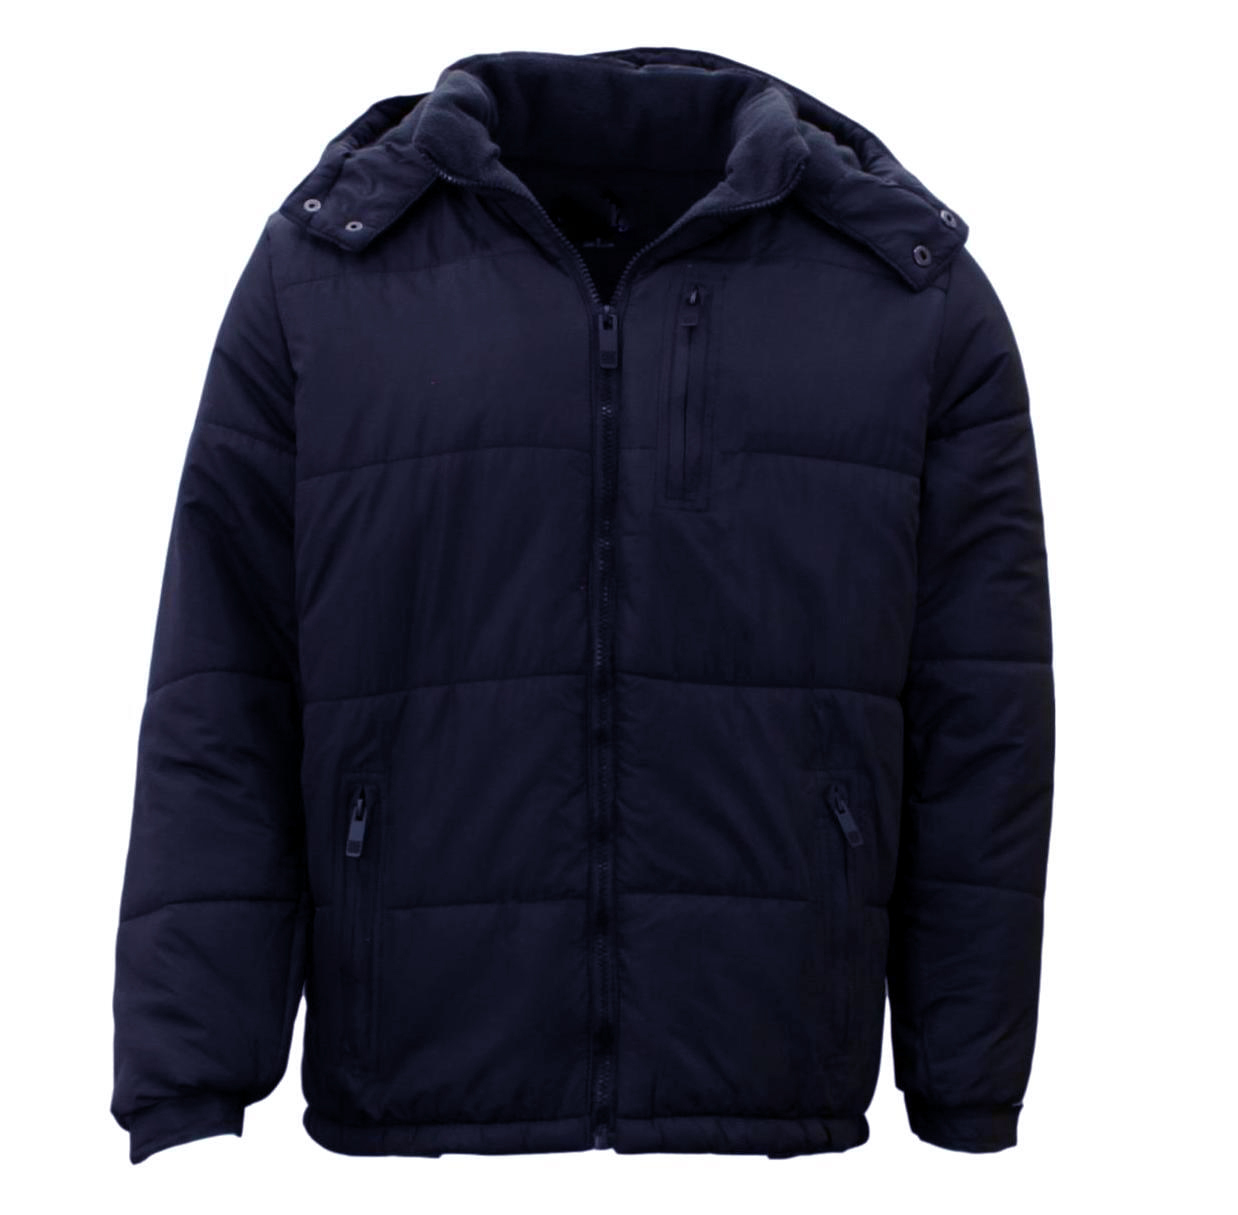 Stitch-Dodge-Mens-Parka-Puffer-Jacket-Quilted-Detachable-Hoodie-Puffy-Padded thumbnail 13